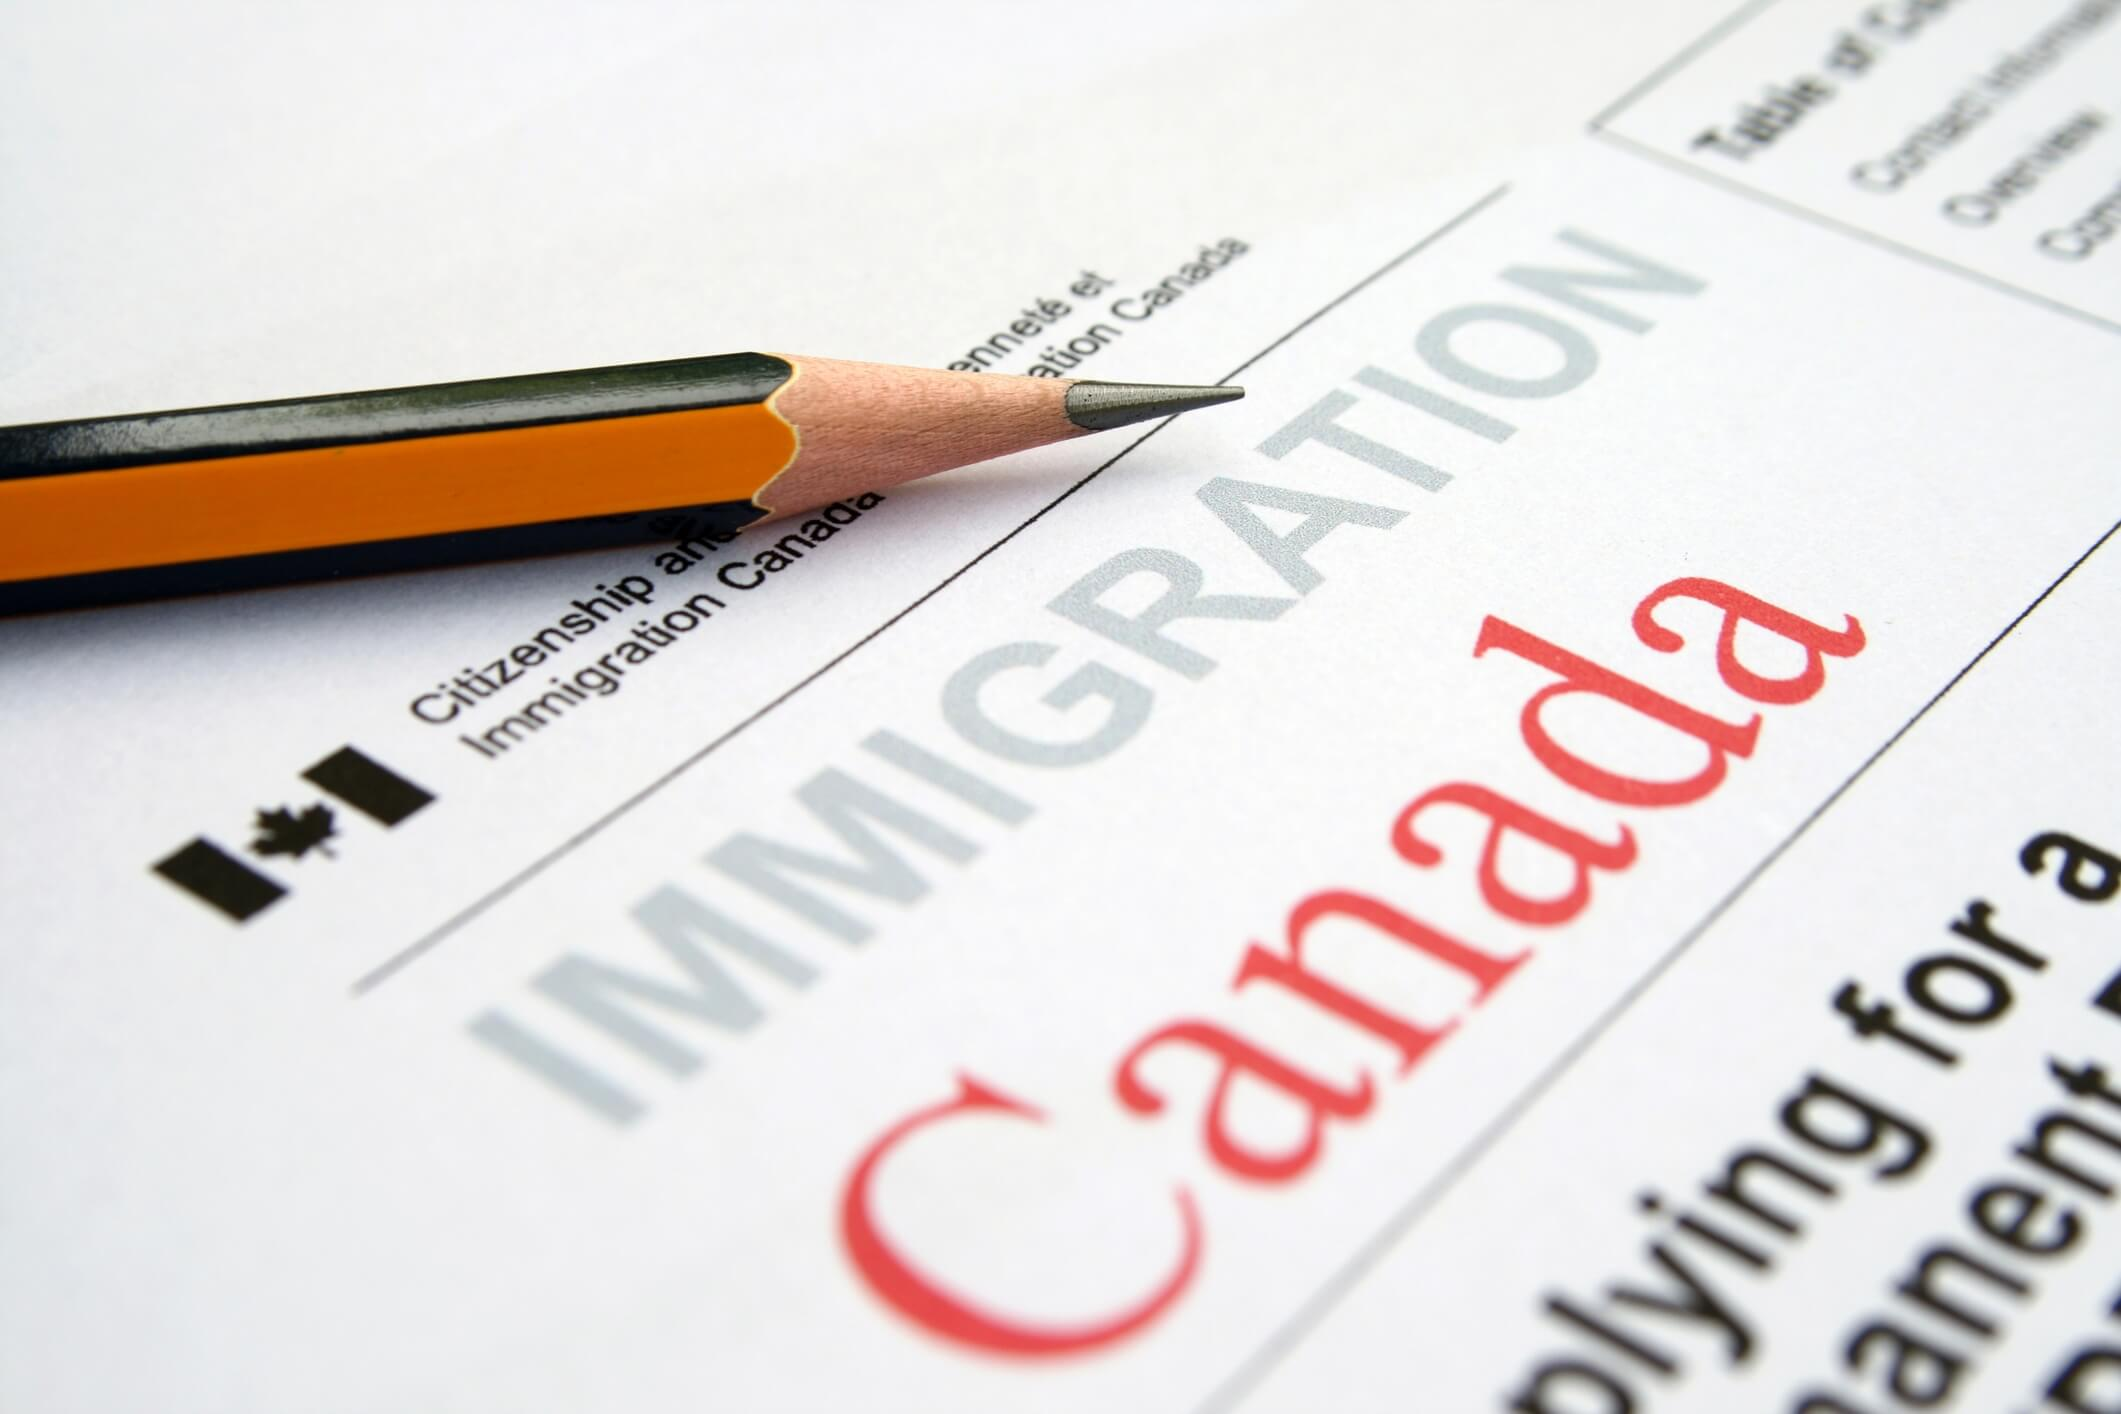 immigrants can help creating more jobs